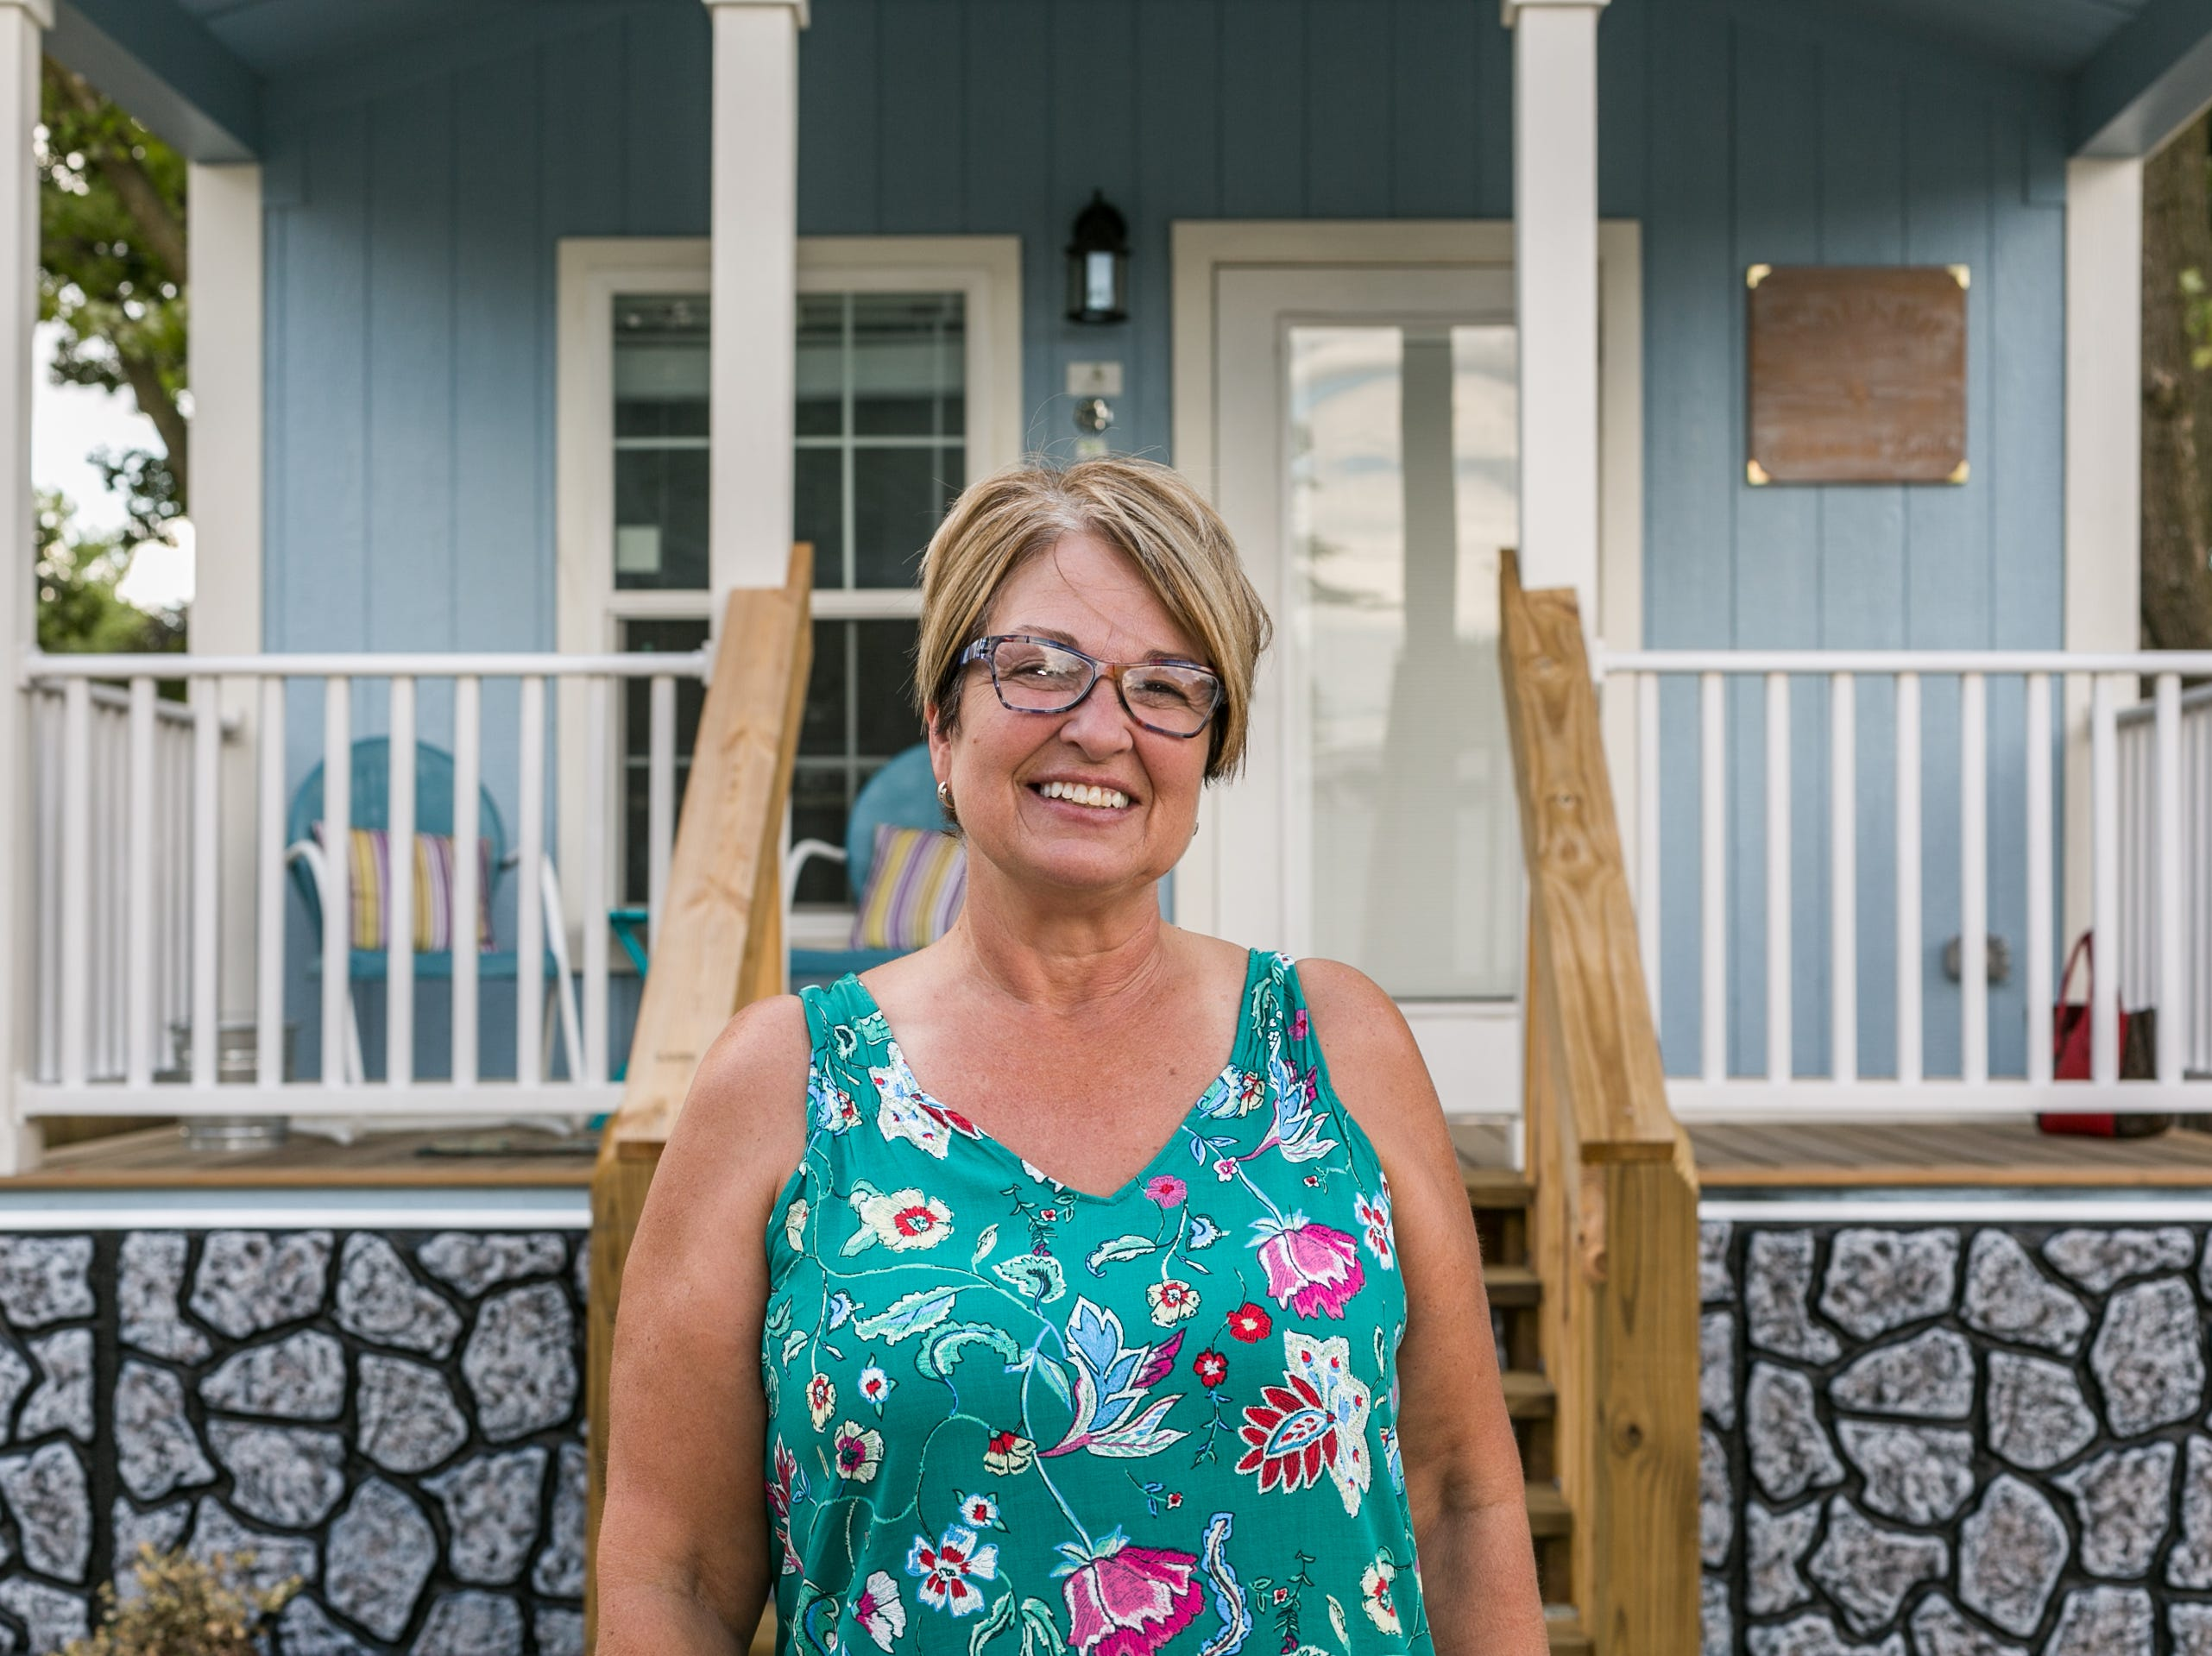 Mary Walker and husband Mike donated a tiny house to the Eden Village project. Mary says the opportunity offered them a concrete way to help combat homelessness.